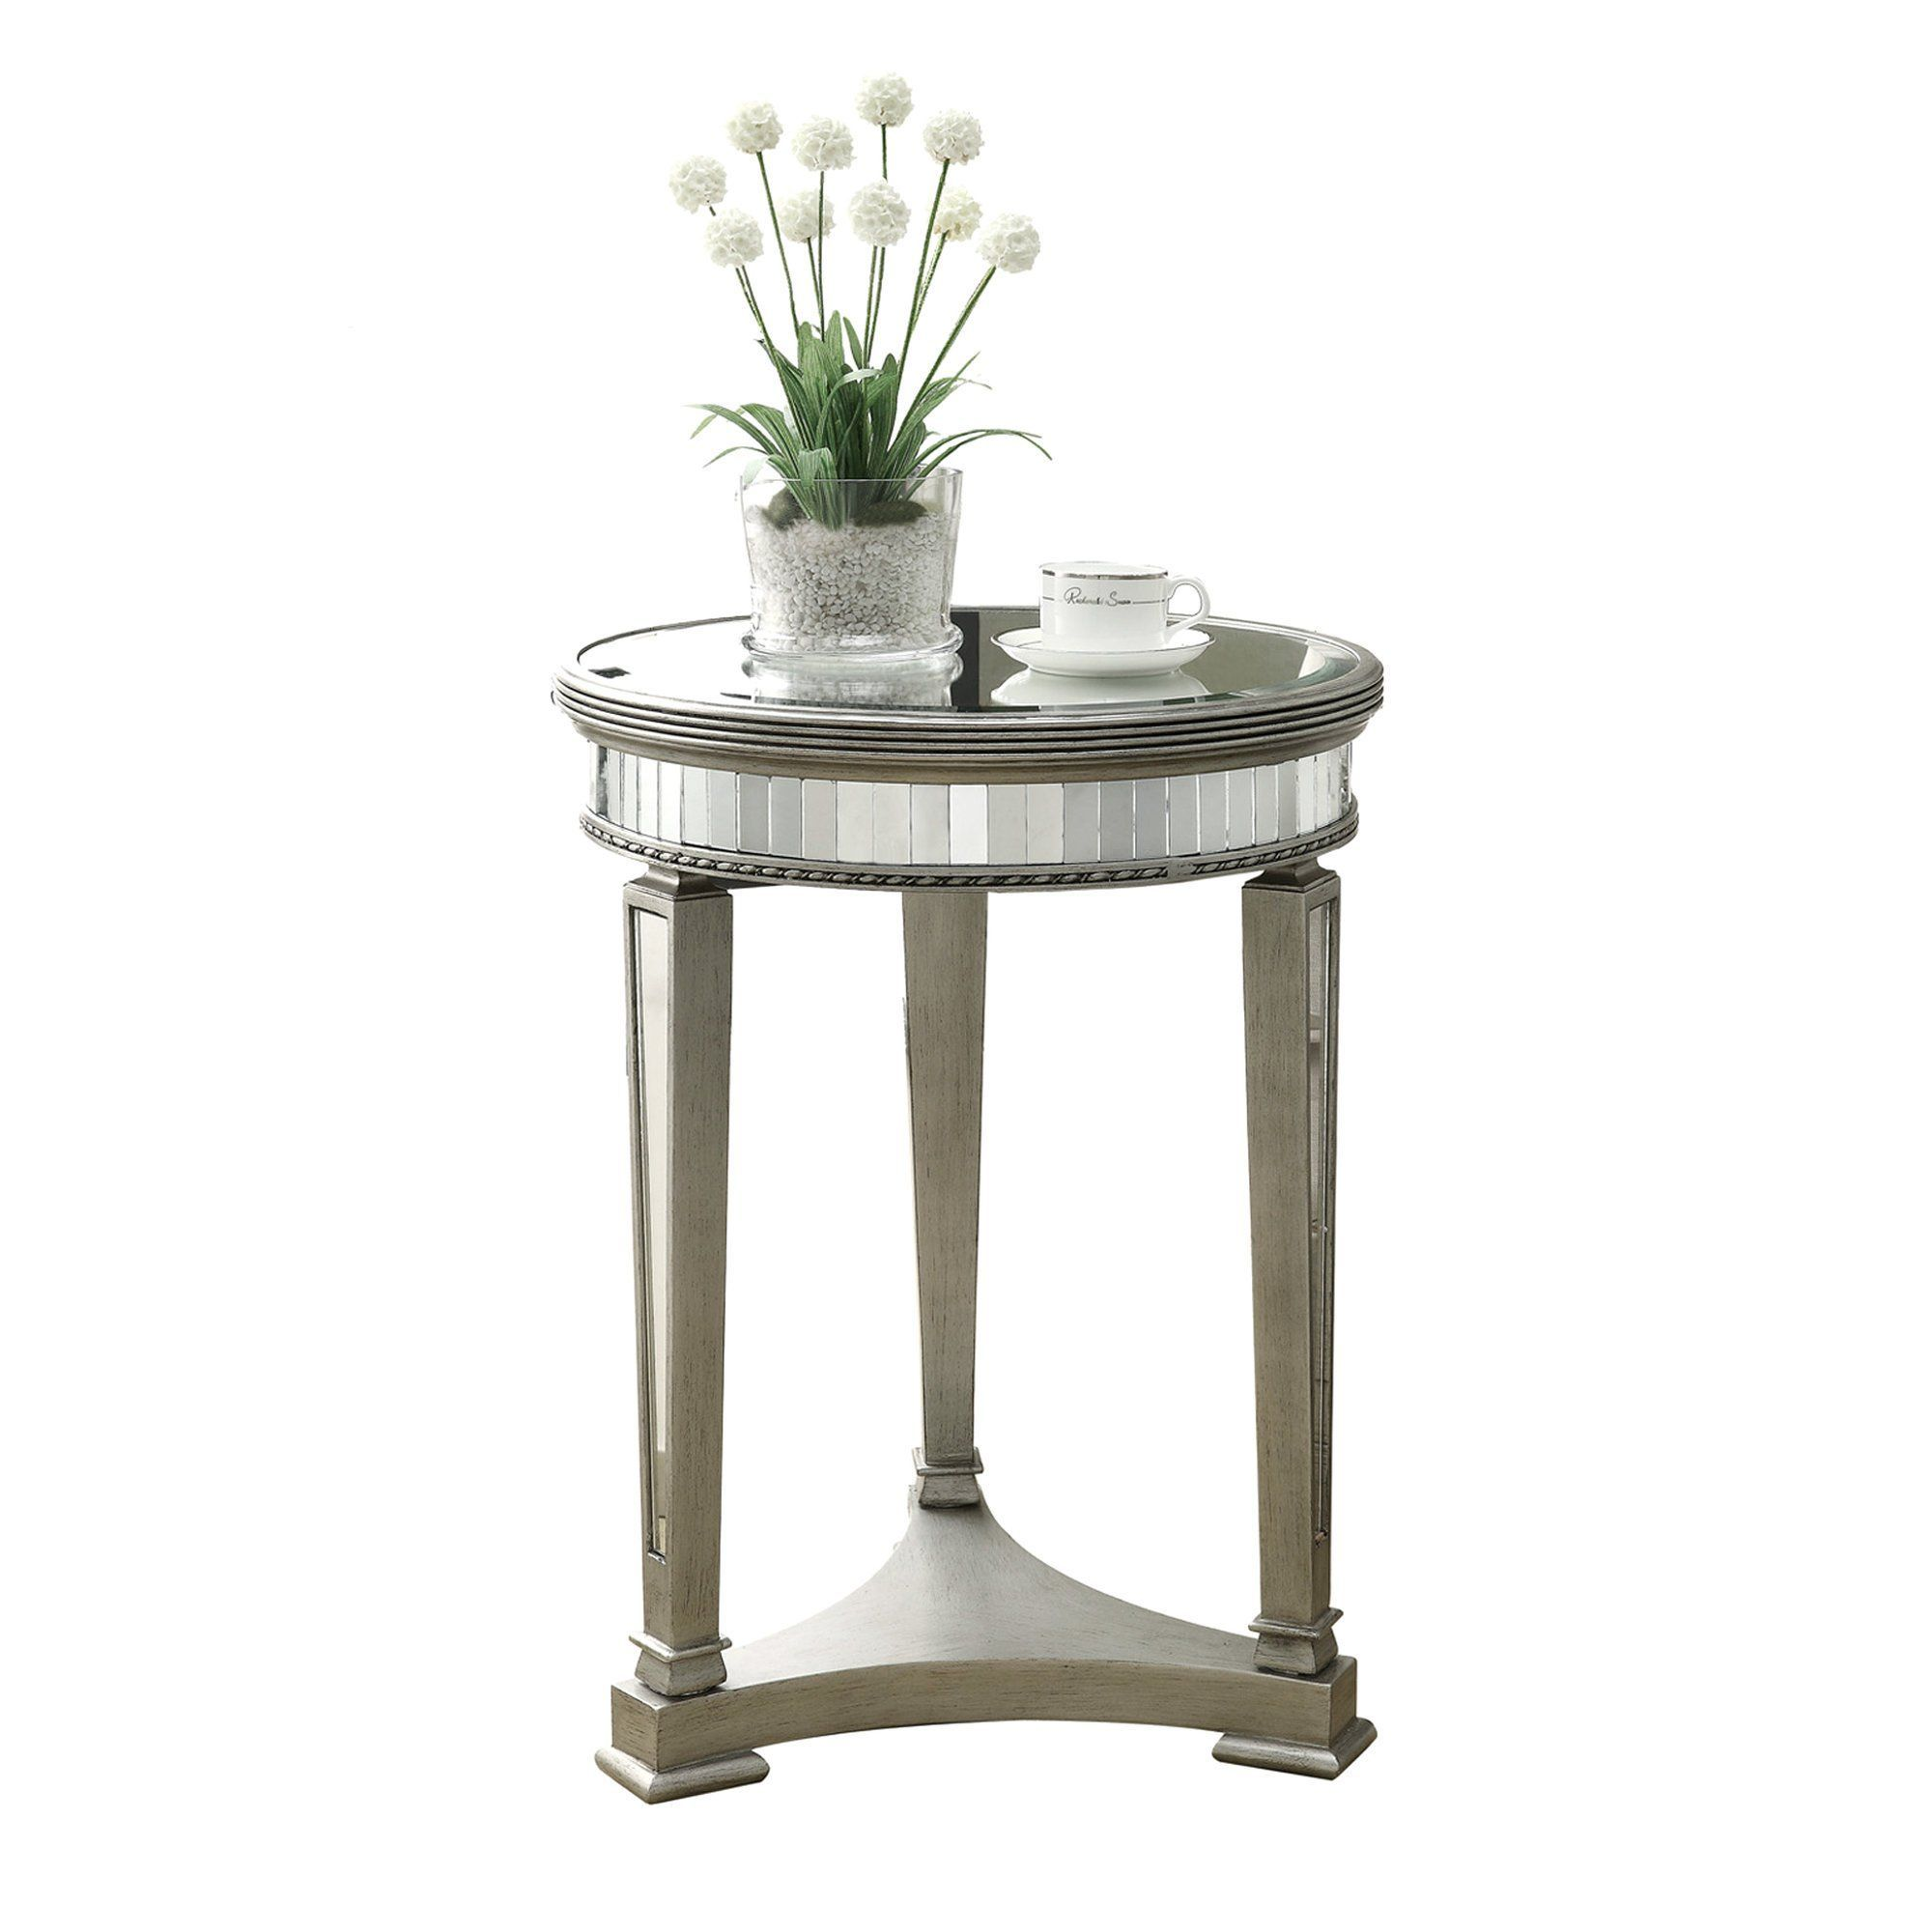 accent table brushed silver mirror products end tables built bench seat gray ikea dark glass coffee black and slate tile ashley furniture ott distressed wood mid modern new diy